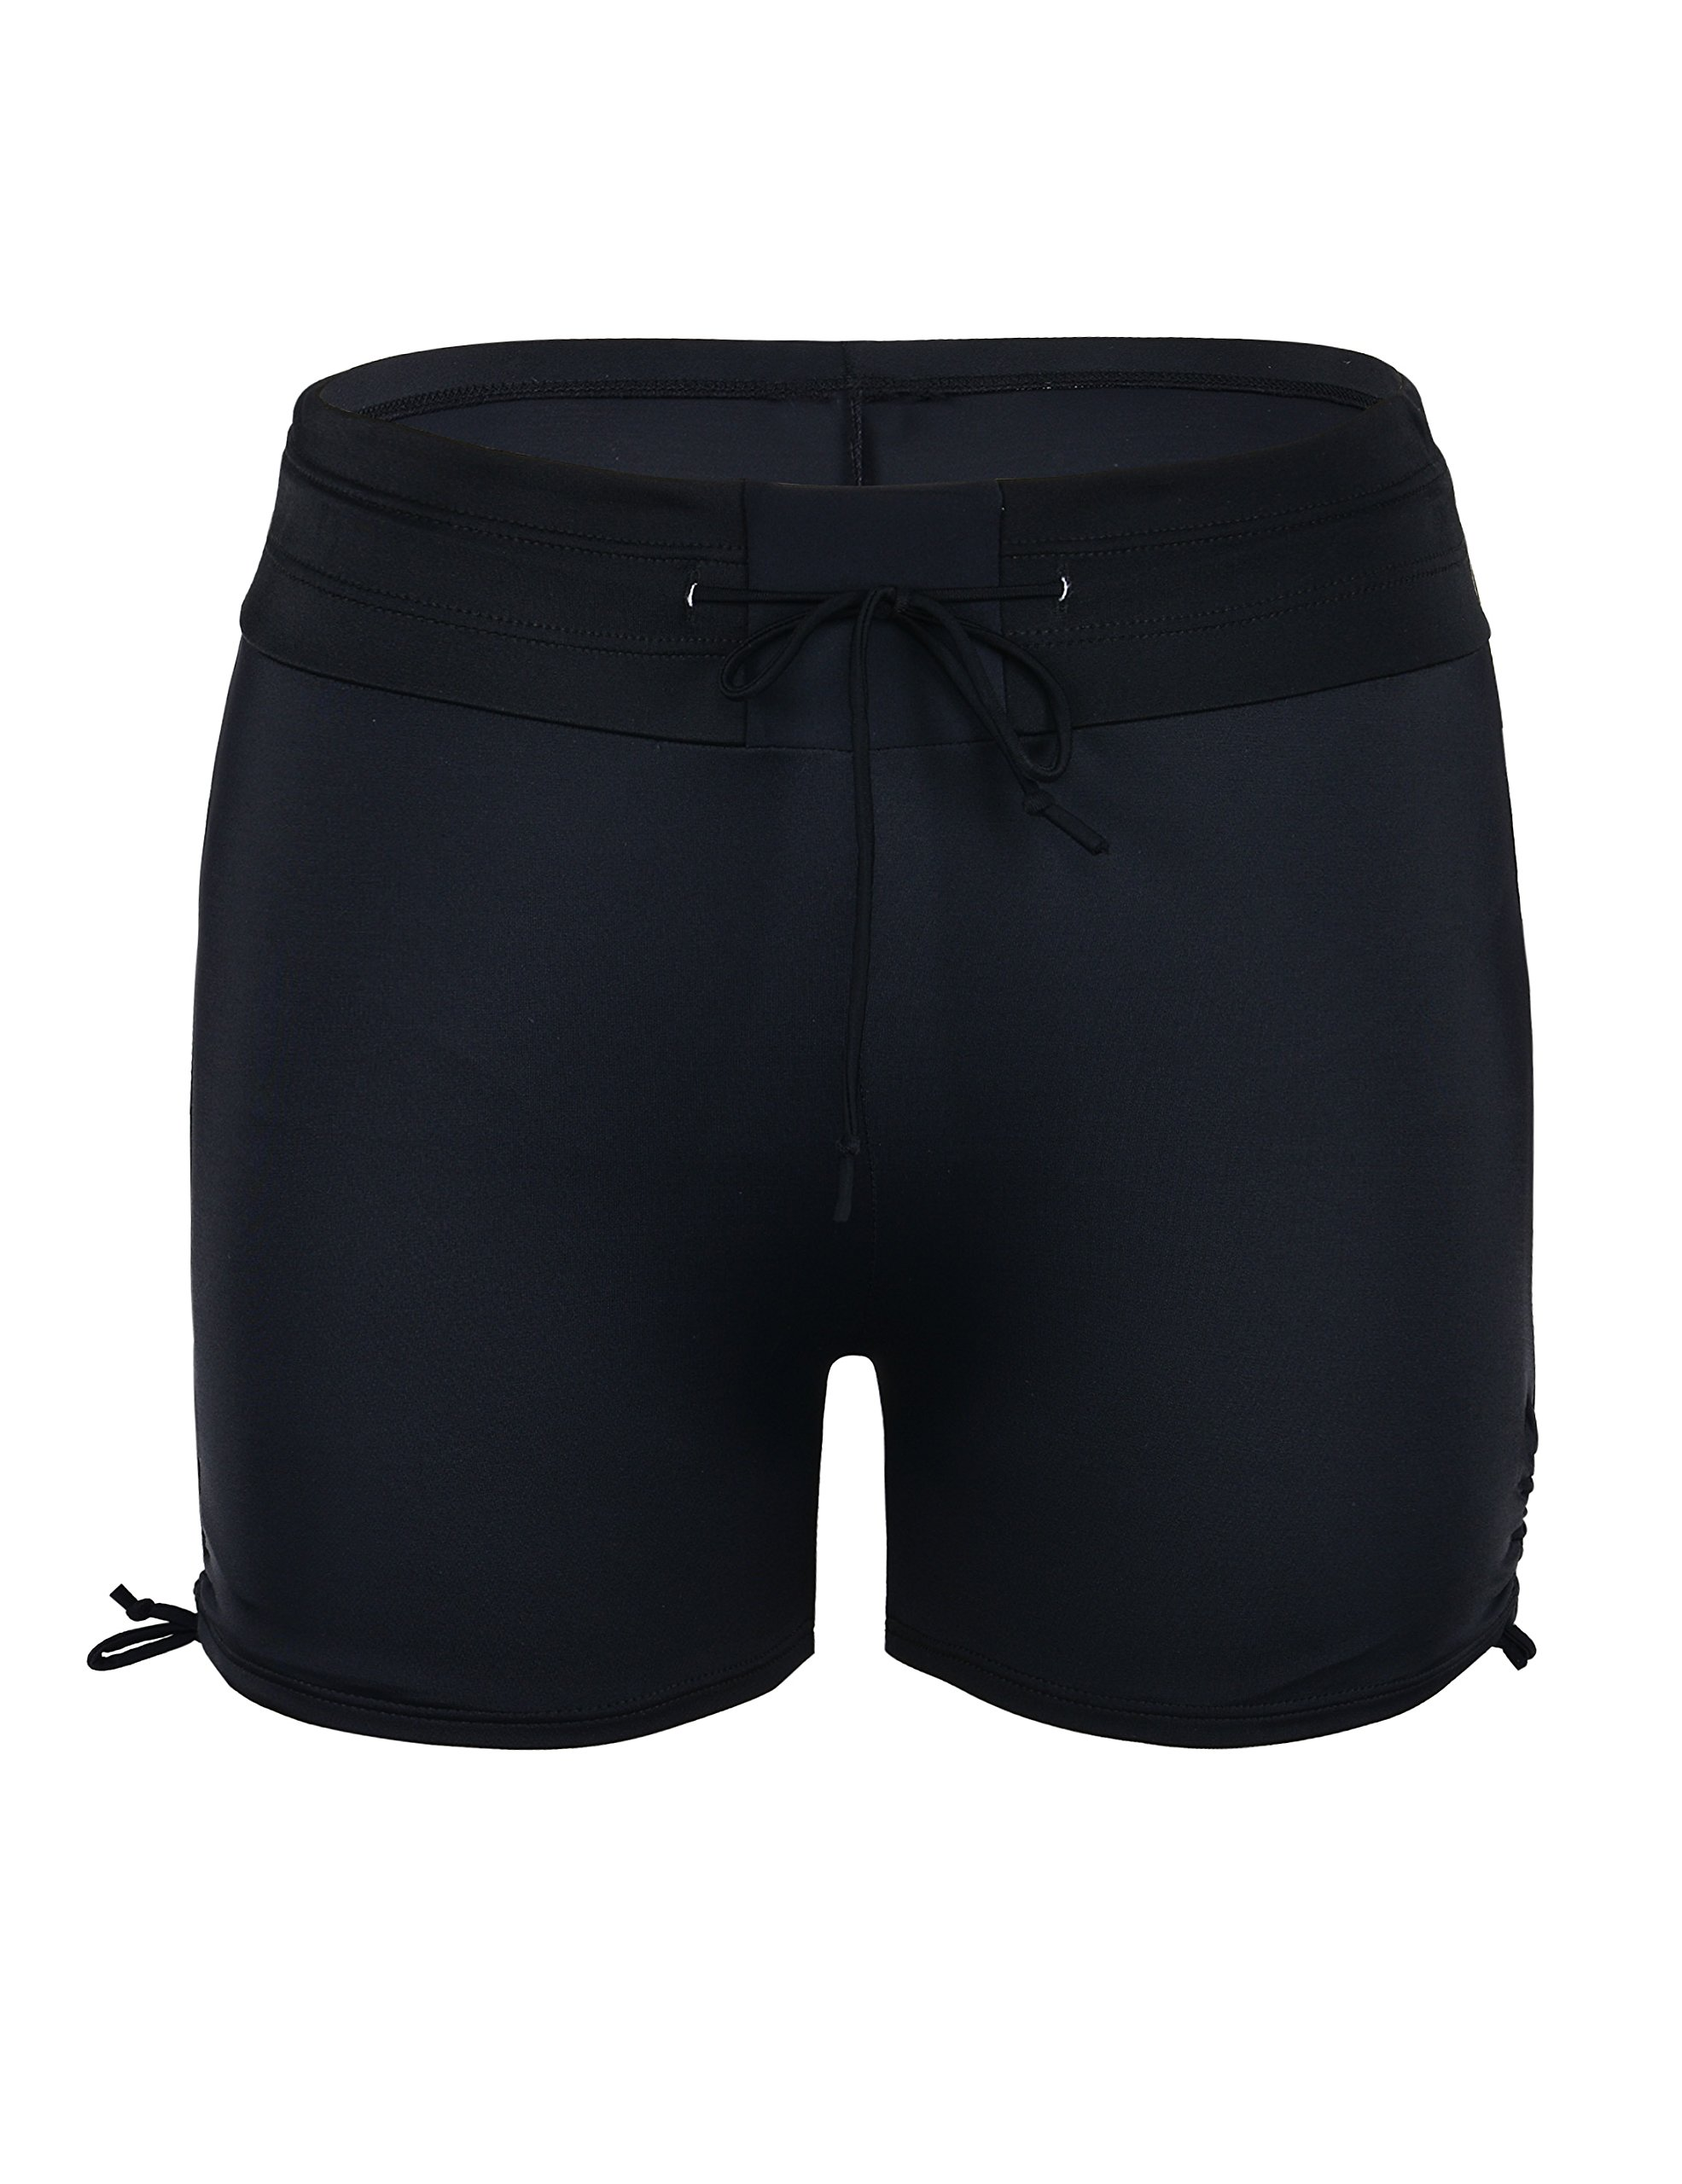 Septangle Womens Black Swim Sports Board Shorts Bottom with Side Ties,US 14 by Septangle (Image #1)